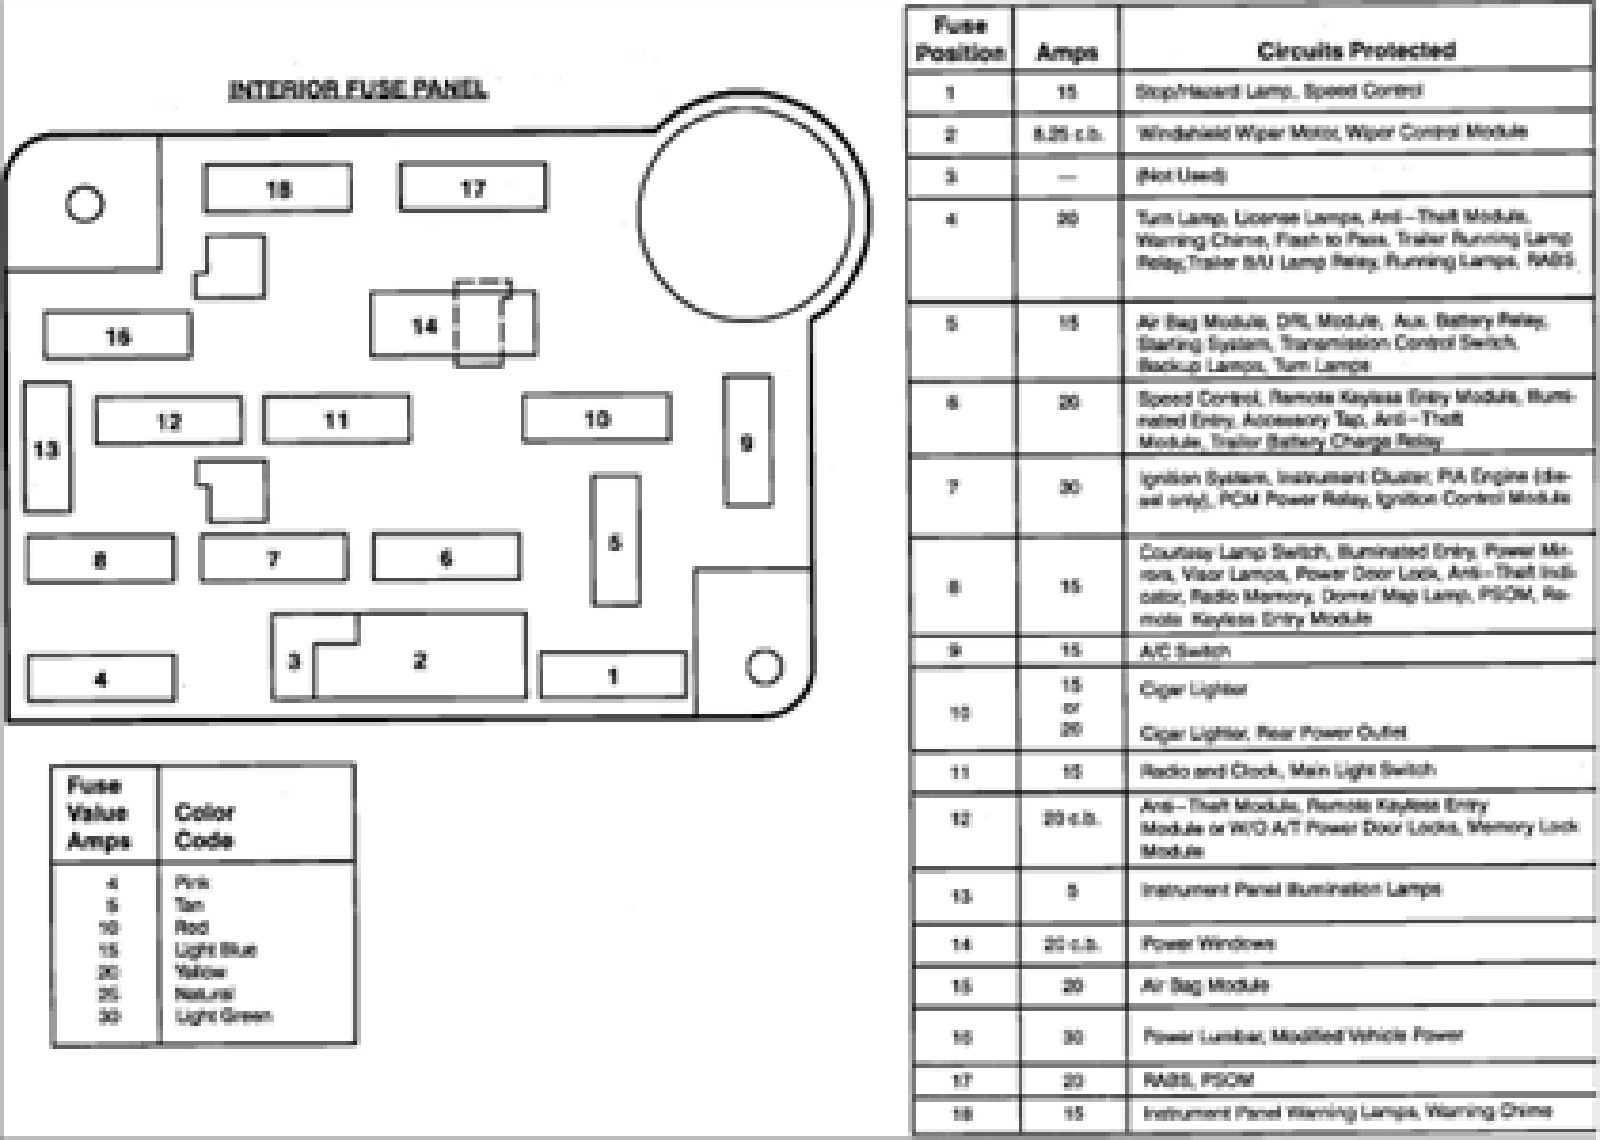 07 ford focus fuse diagram cushman titan wiring diagrams snyi ortholinc de 89 f250 box rh a2 malibustixx